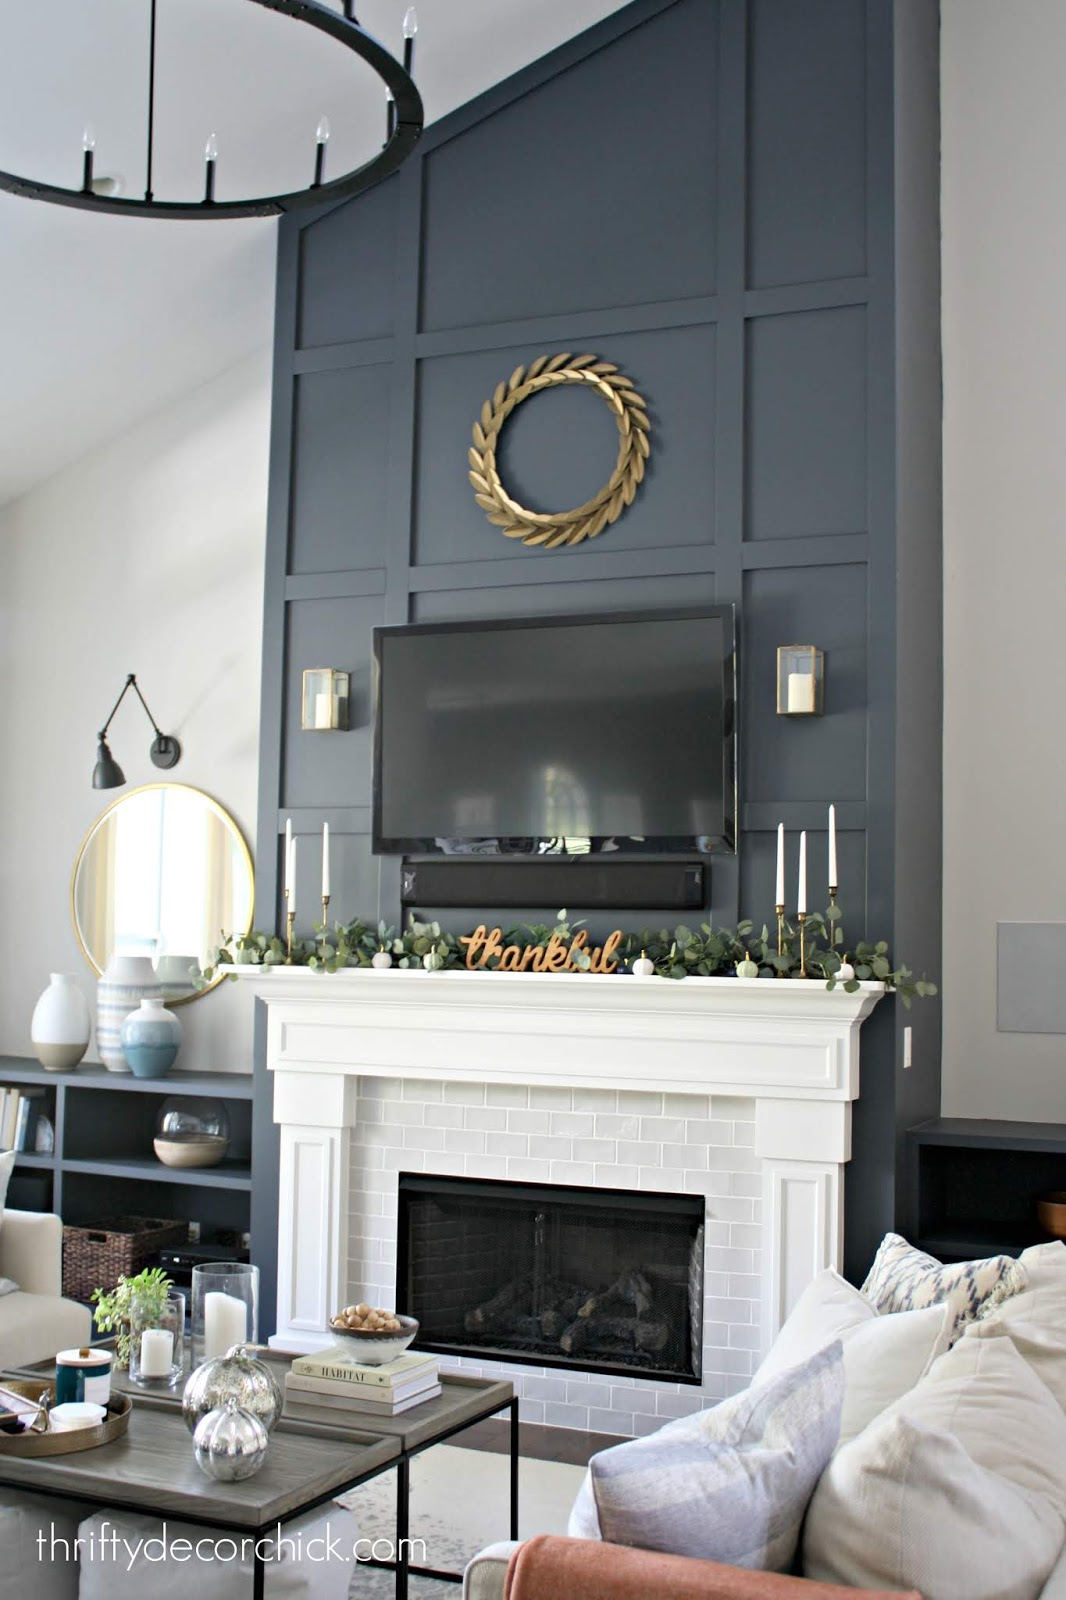 Tall fireplace with mdf grid pattern